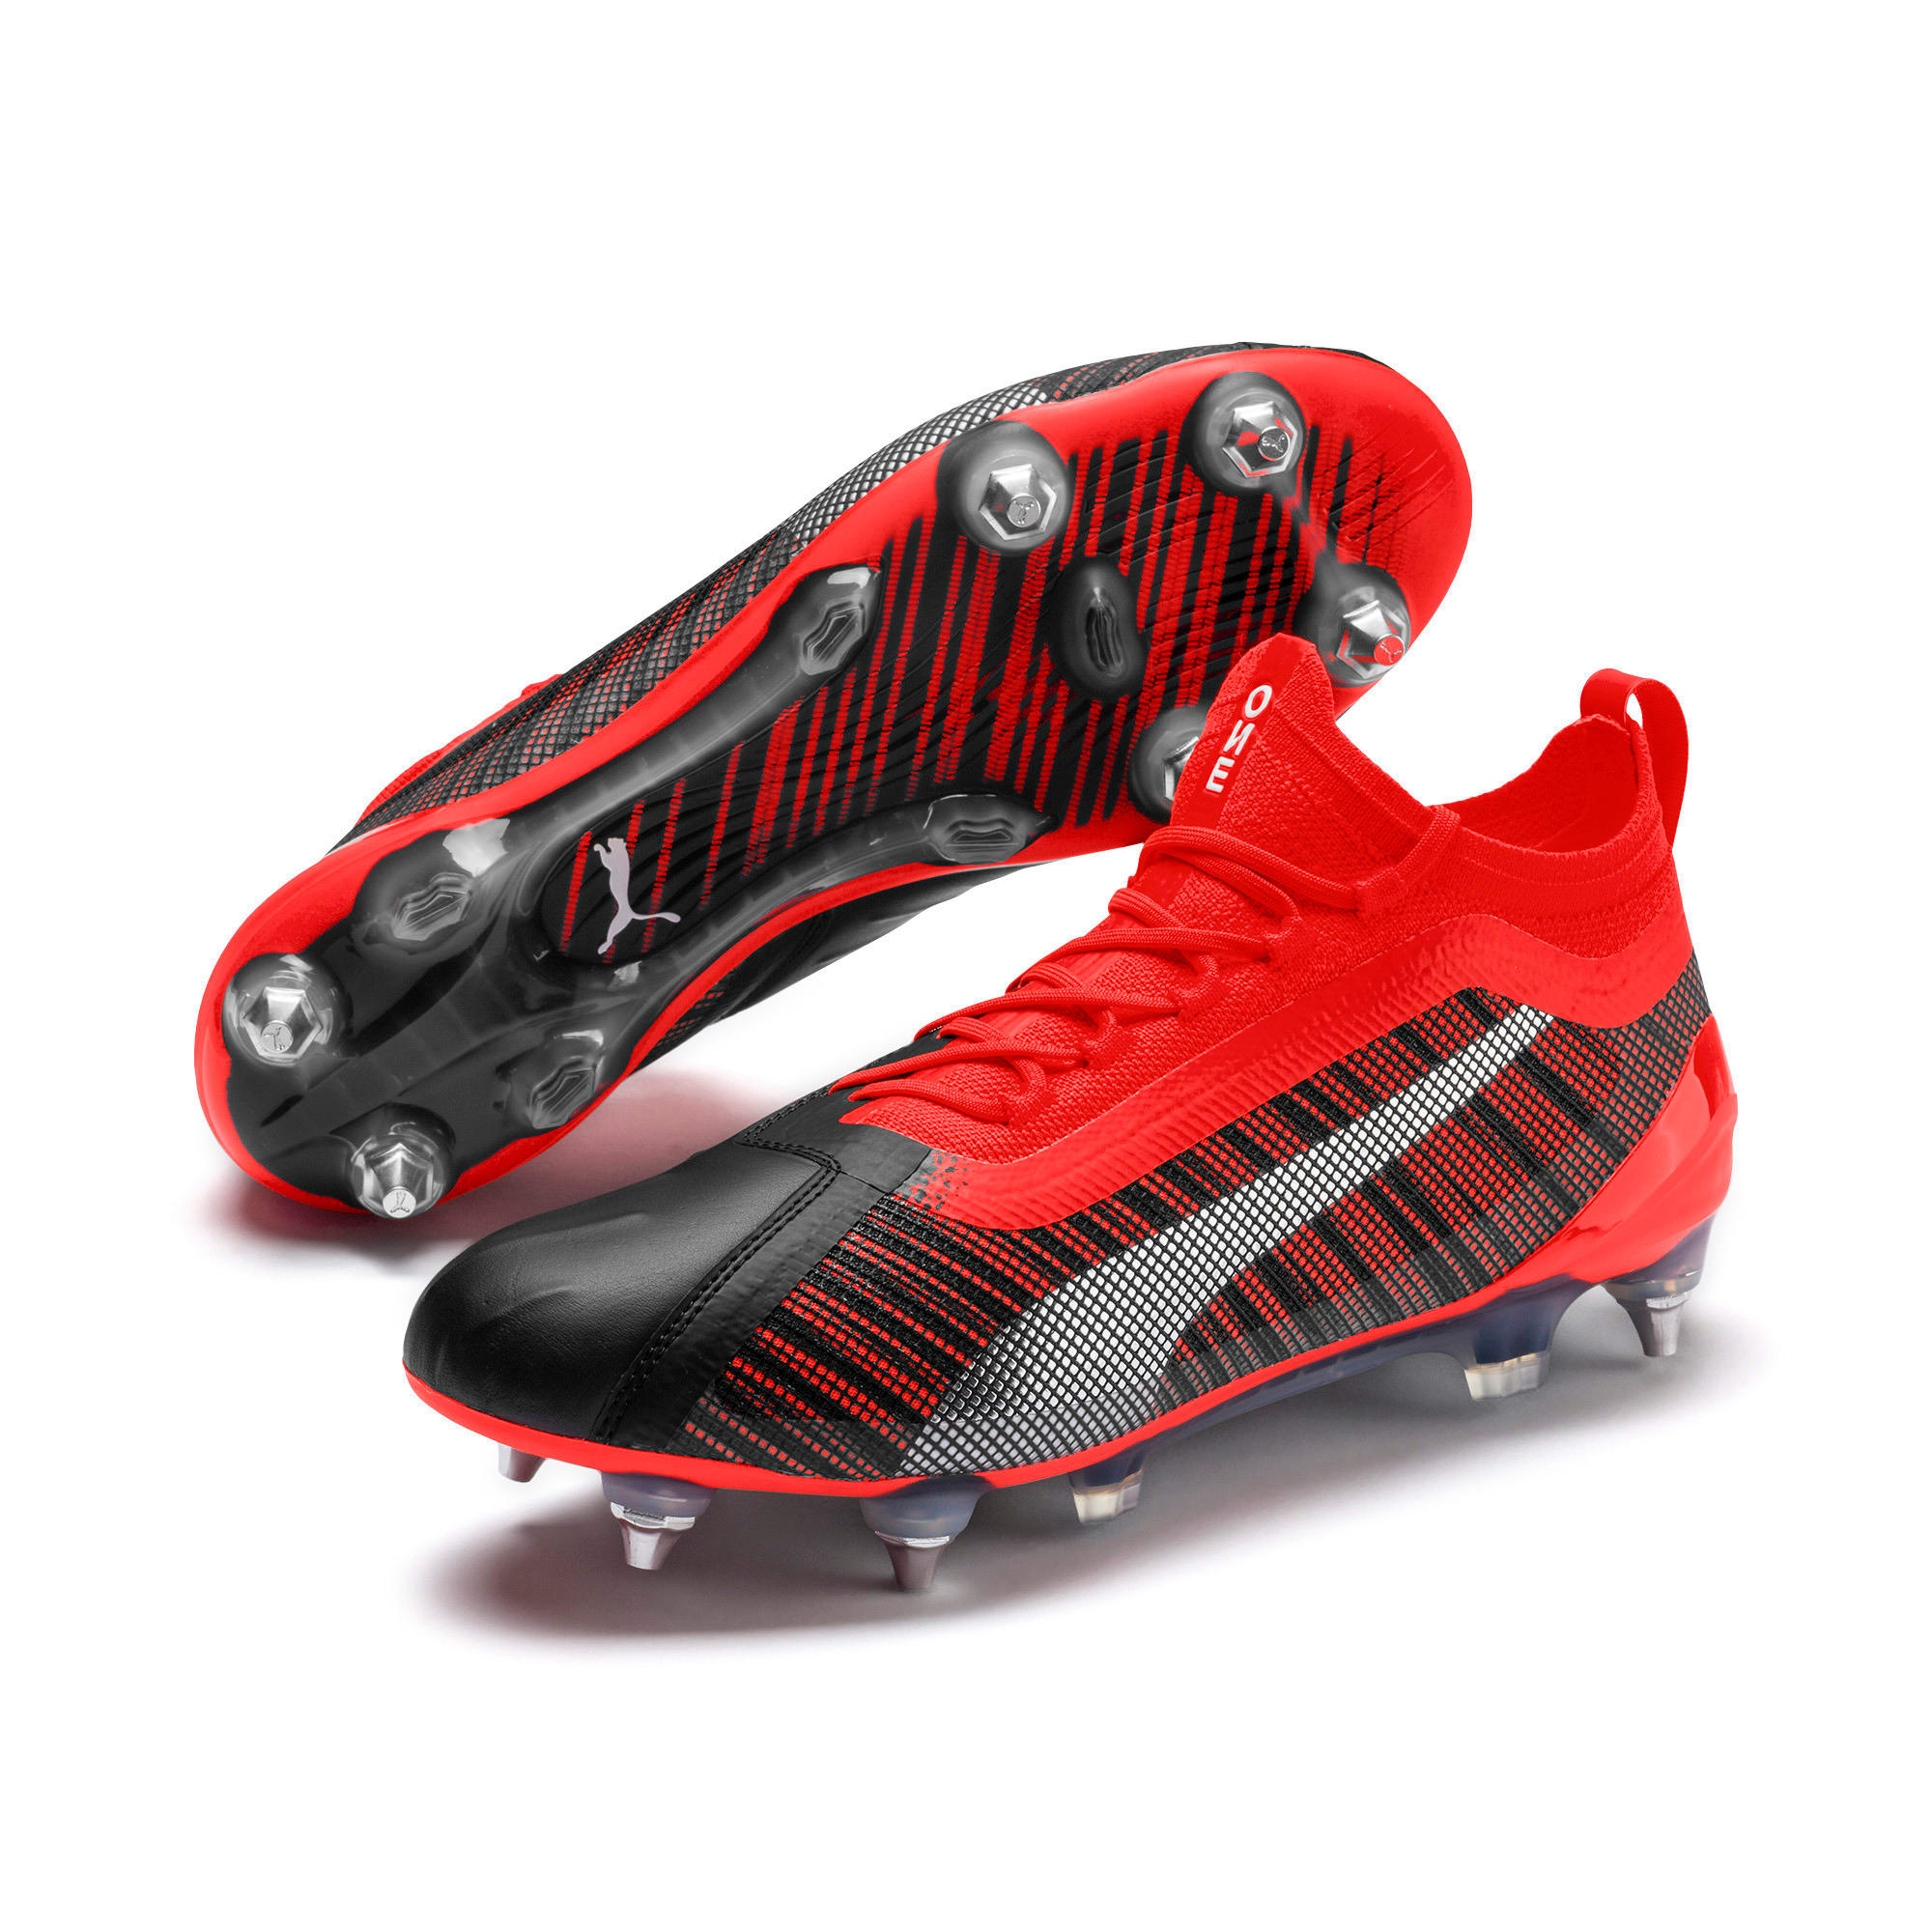 Thumbnail 3 of PUMA ONE 5.1 MxSG voetbalschoenen, Black-Nrgy Red-Aged Silver, medium